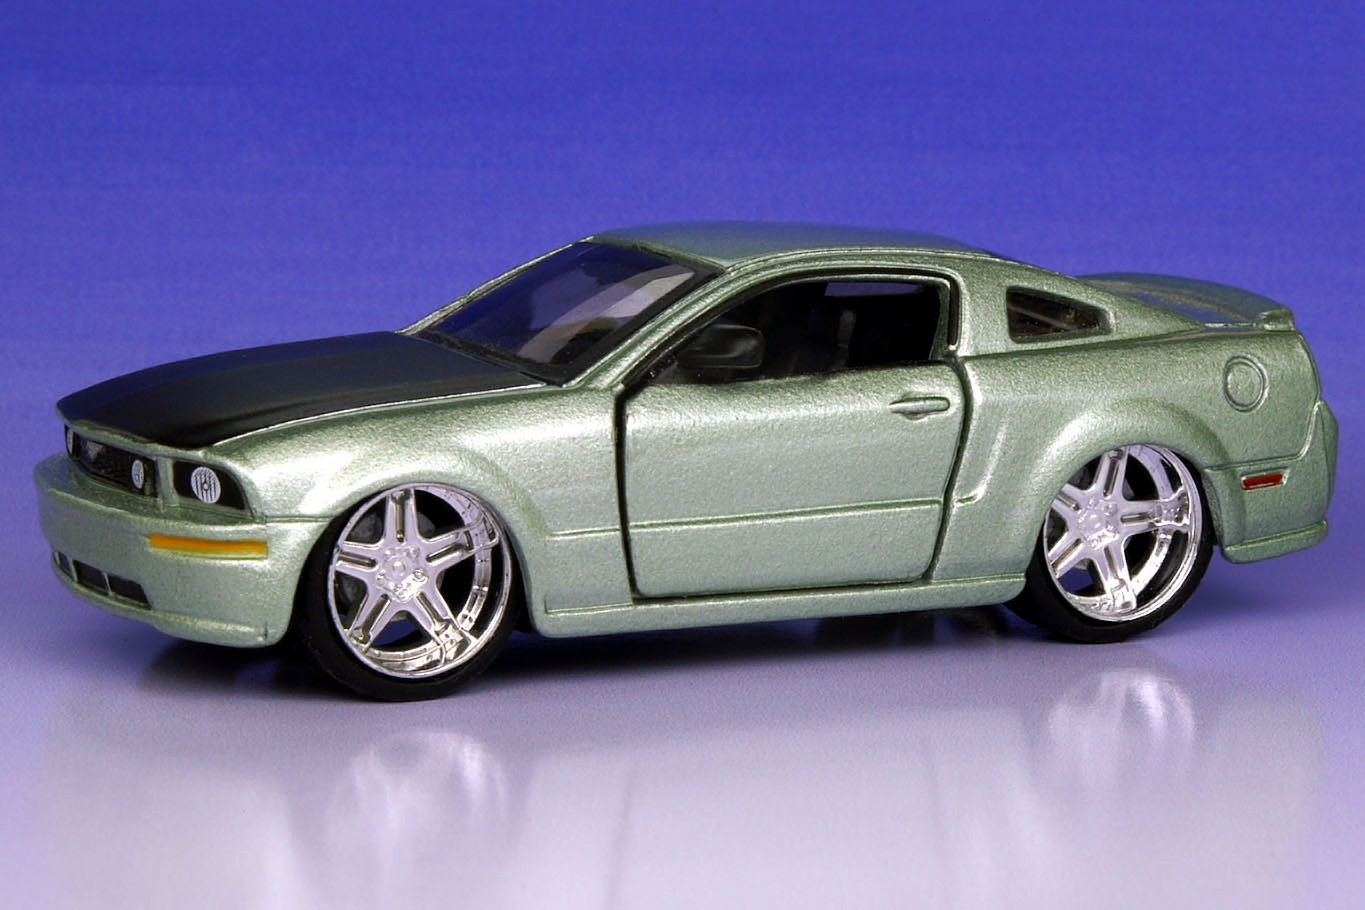 2006 Ford Mustang Gt Maisto Diecast Wiki Fandom Powered By Wikia 9845df